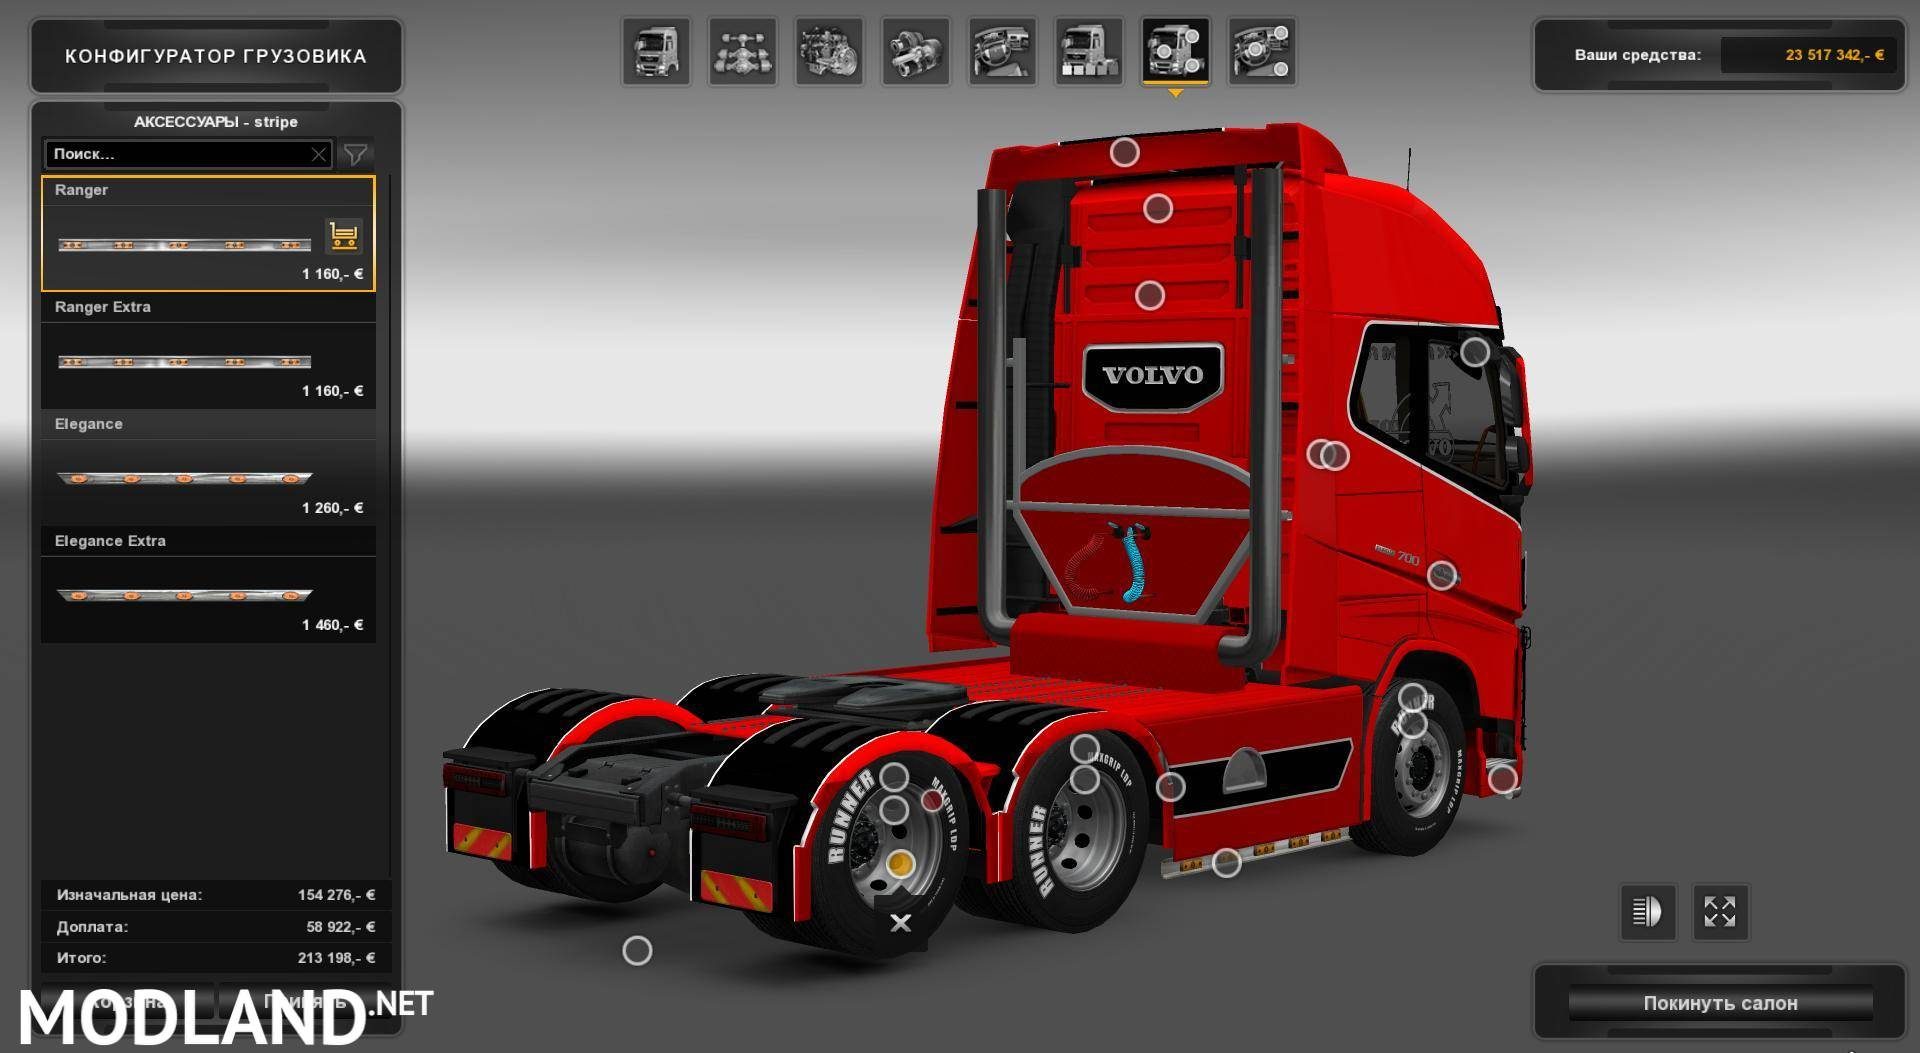 Volvo FH16 700 by Nikola mod for ETS 2